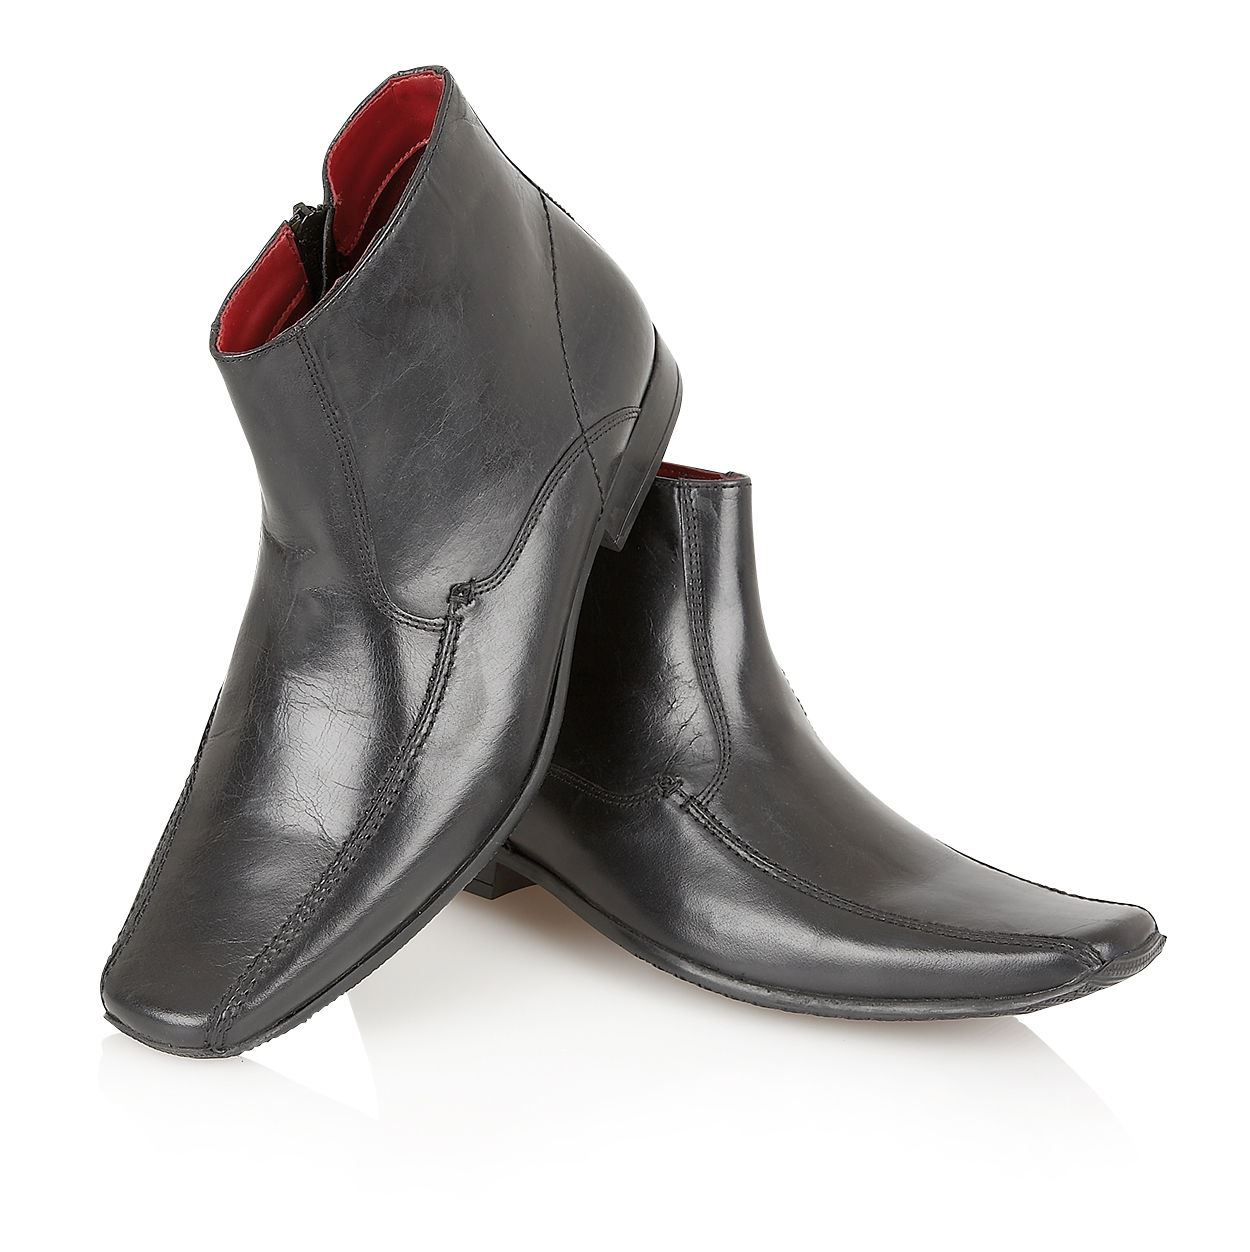 mens italian style real leather designer ankle boot formal